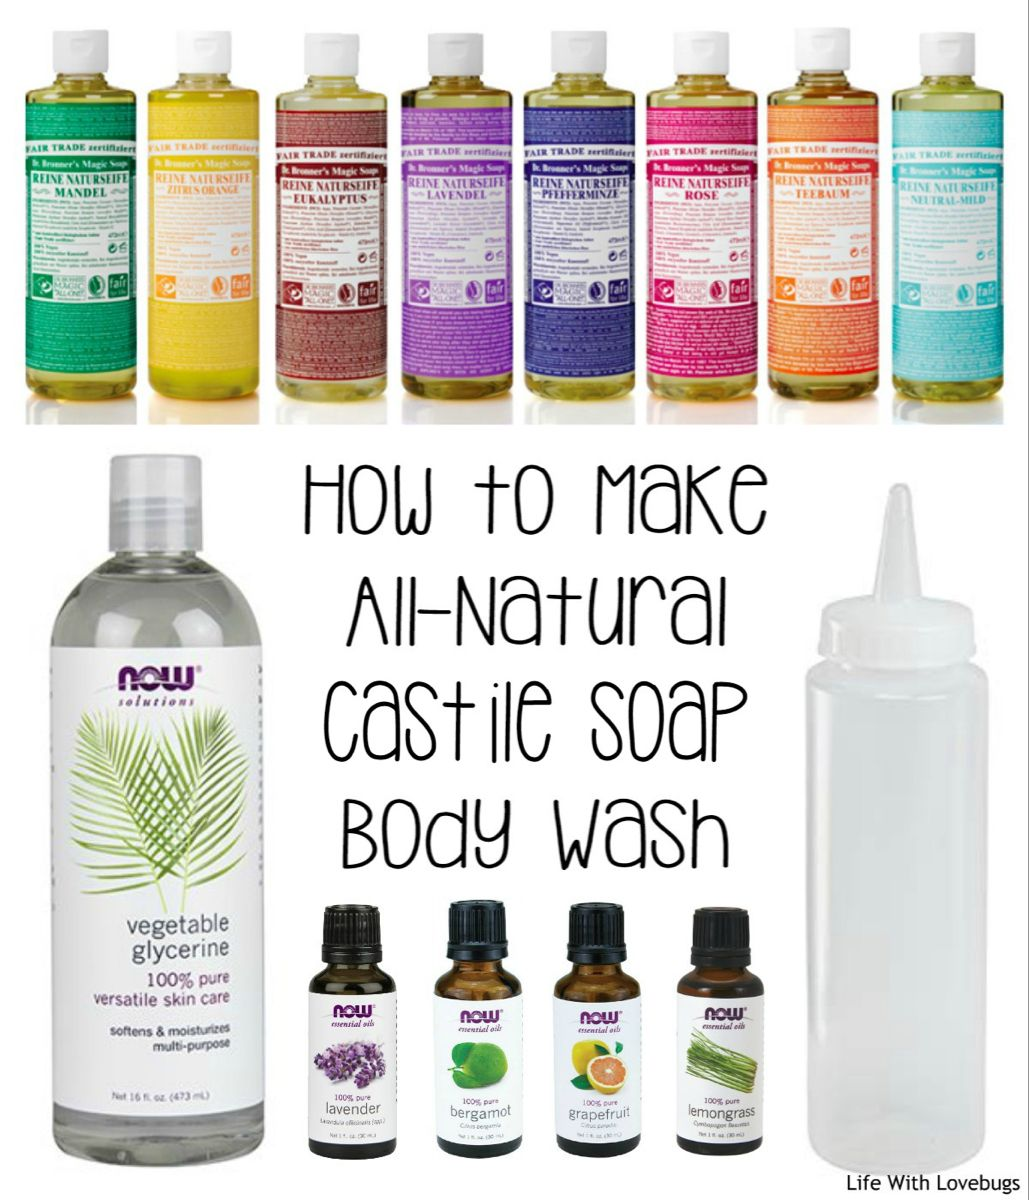 DIY AllNatural Castile Soap Body Wash (With images